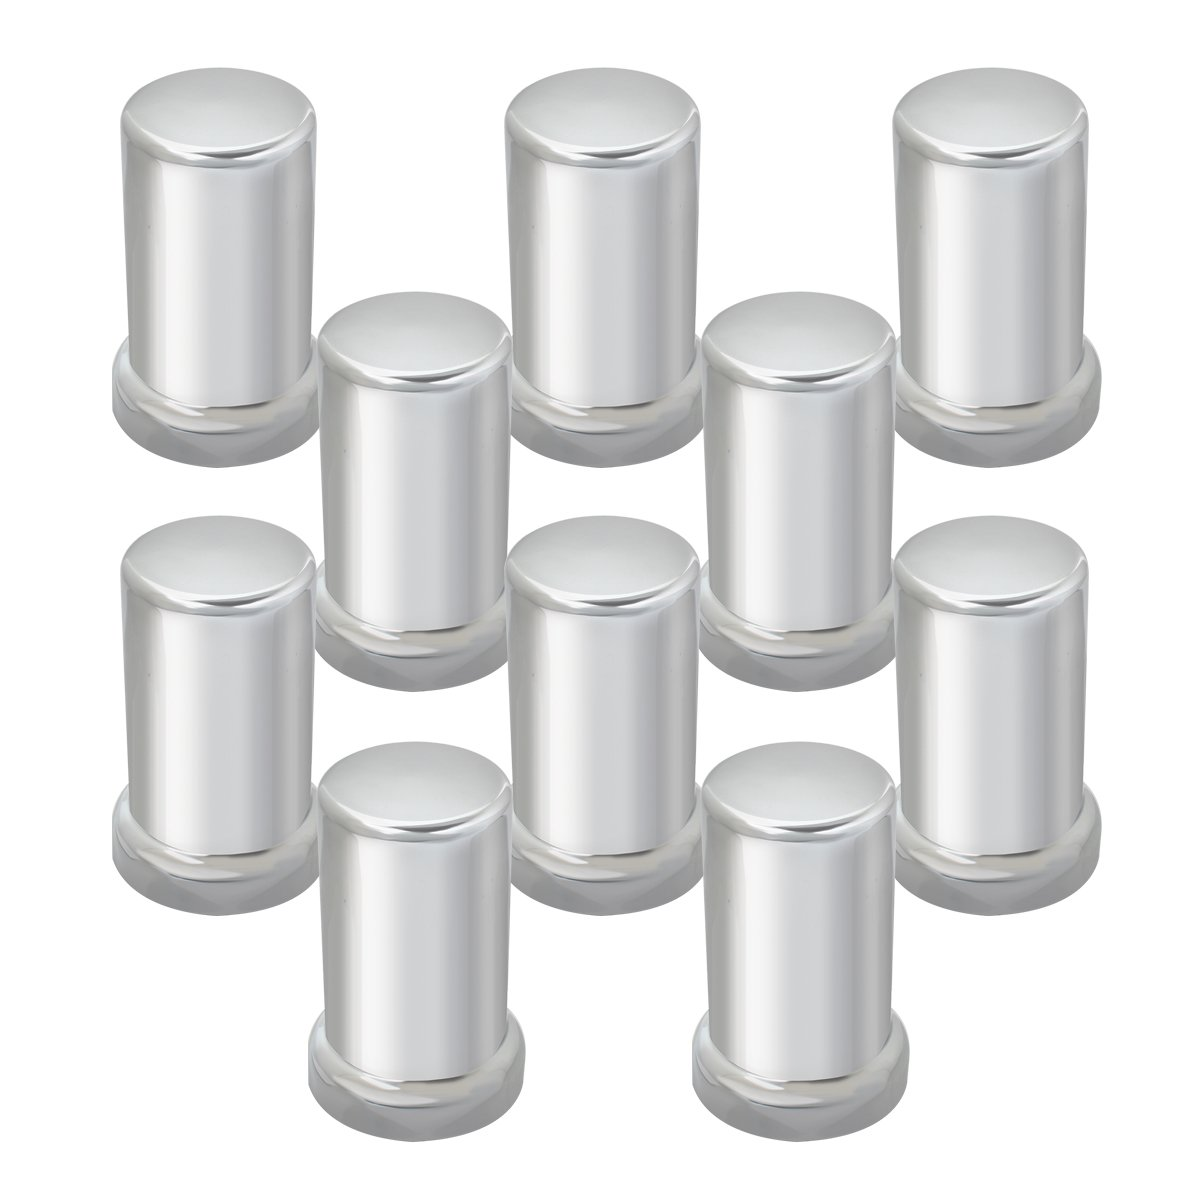 Grand General 10261SP Chrome 33mm x 3-3/8'' Plastic Tube Screw-In Nut Cover with Flange